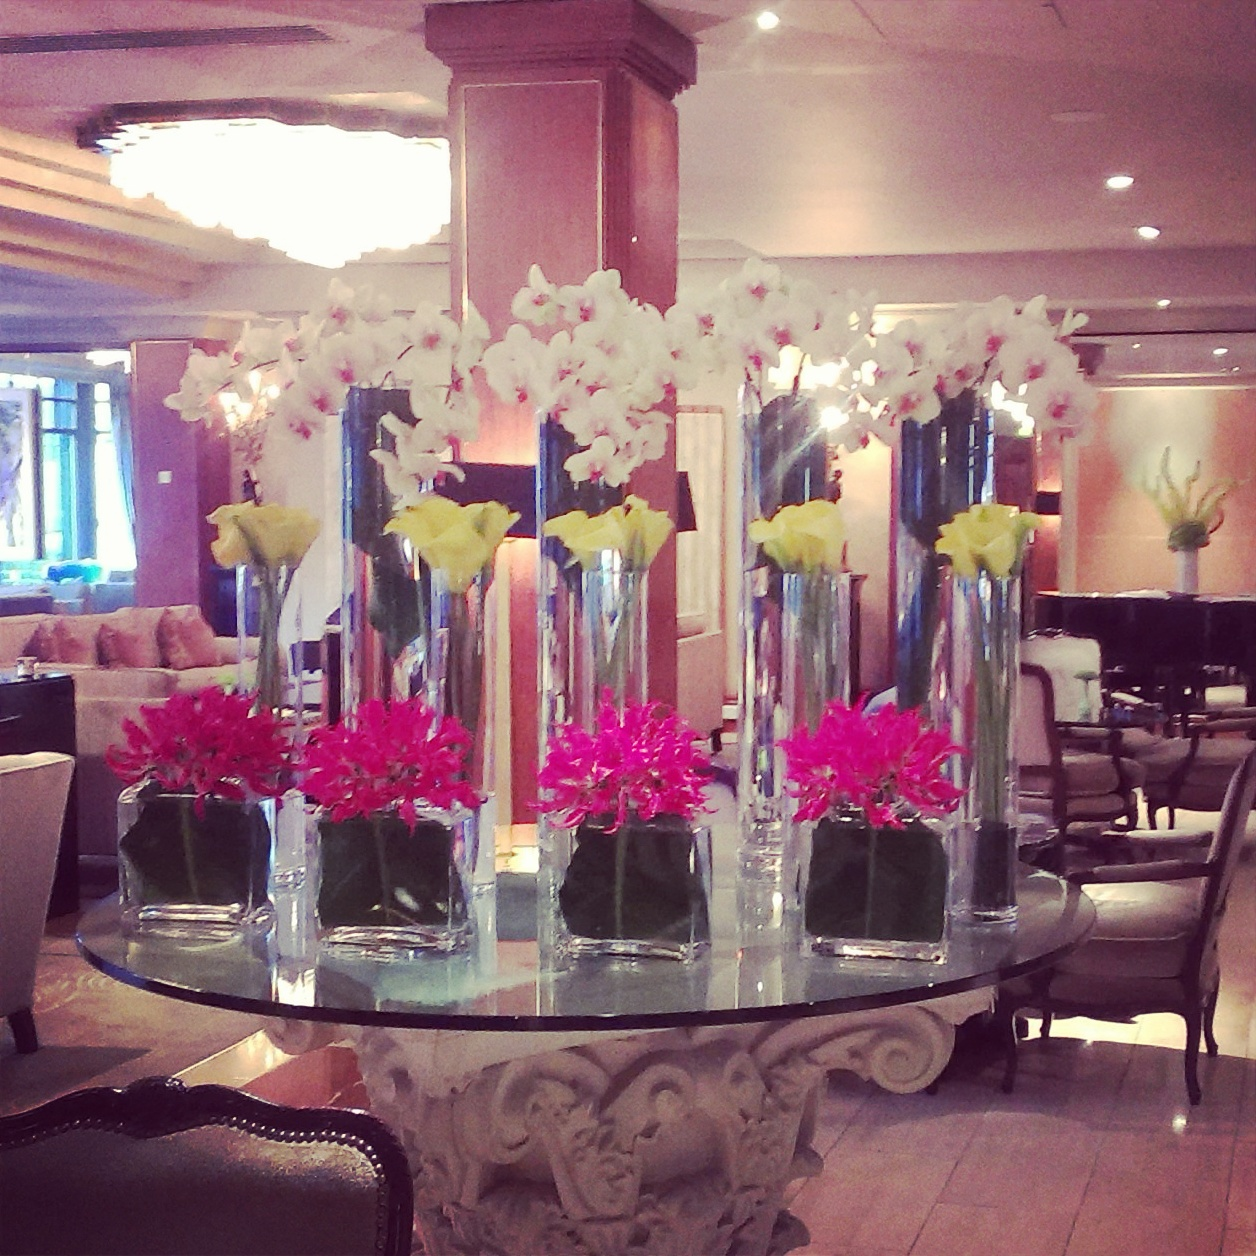 Flower arrangement in The Westbury